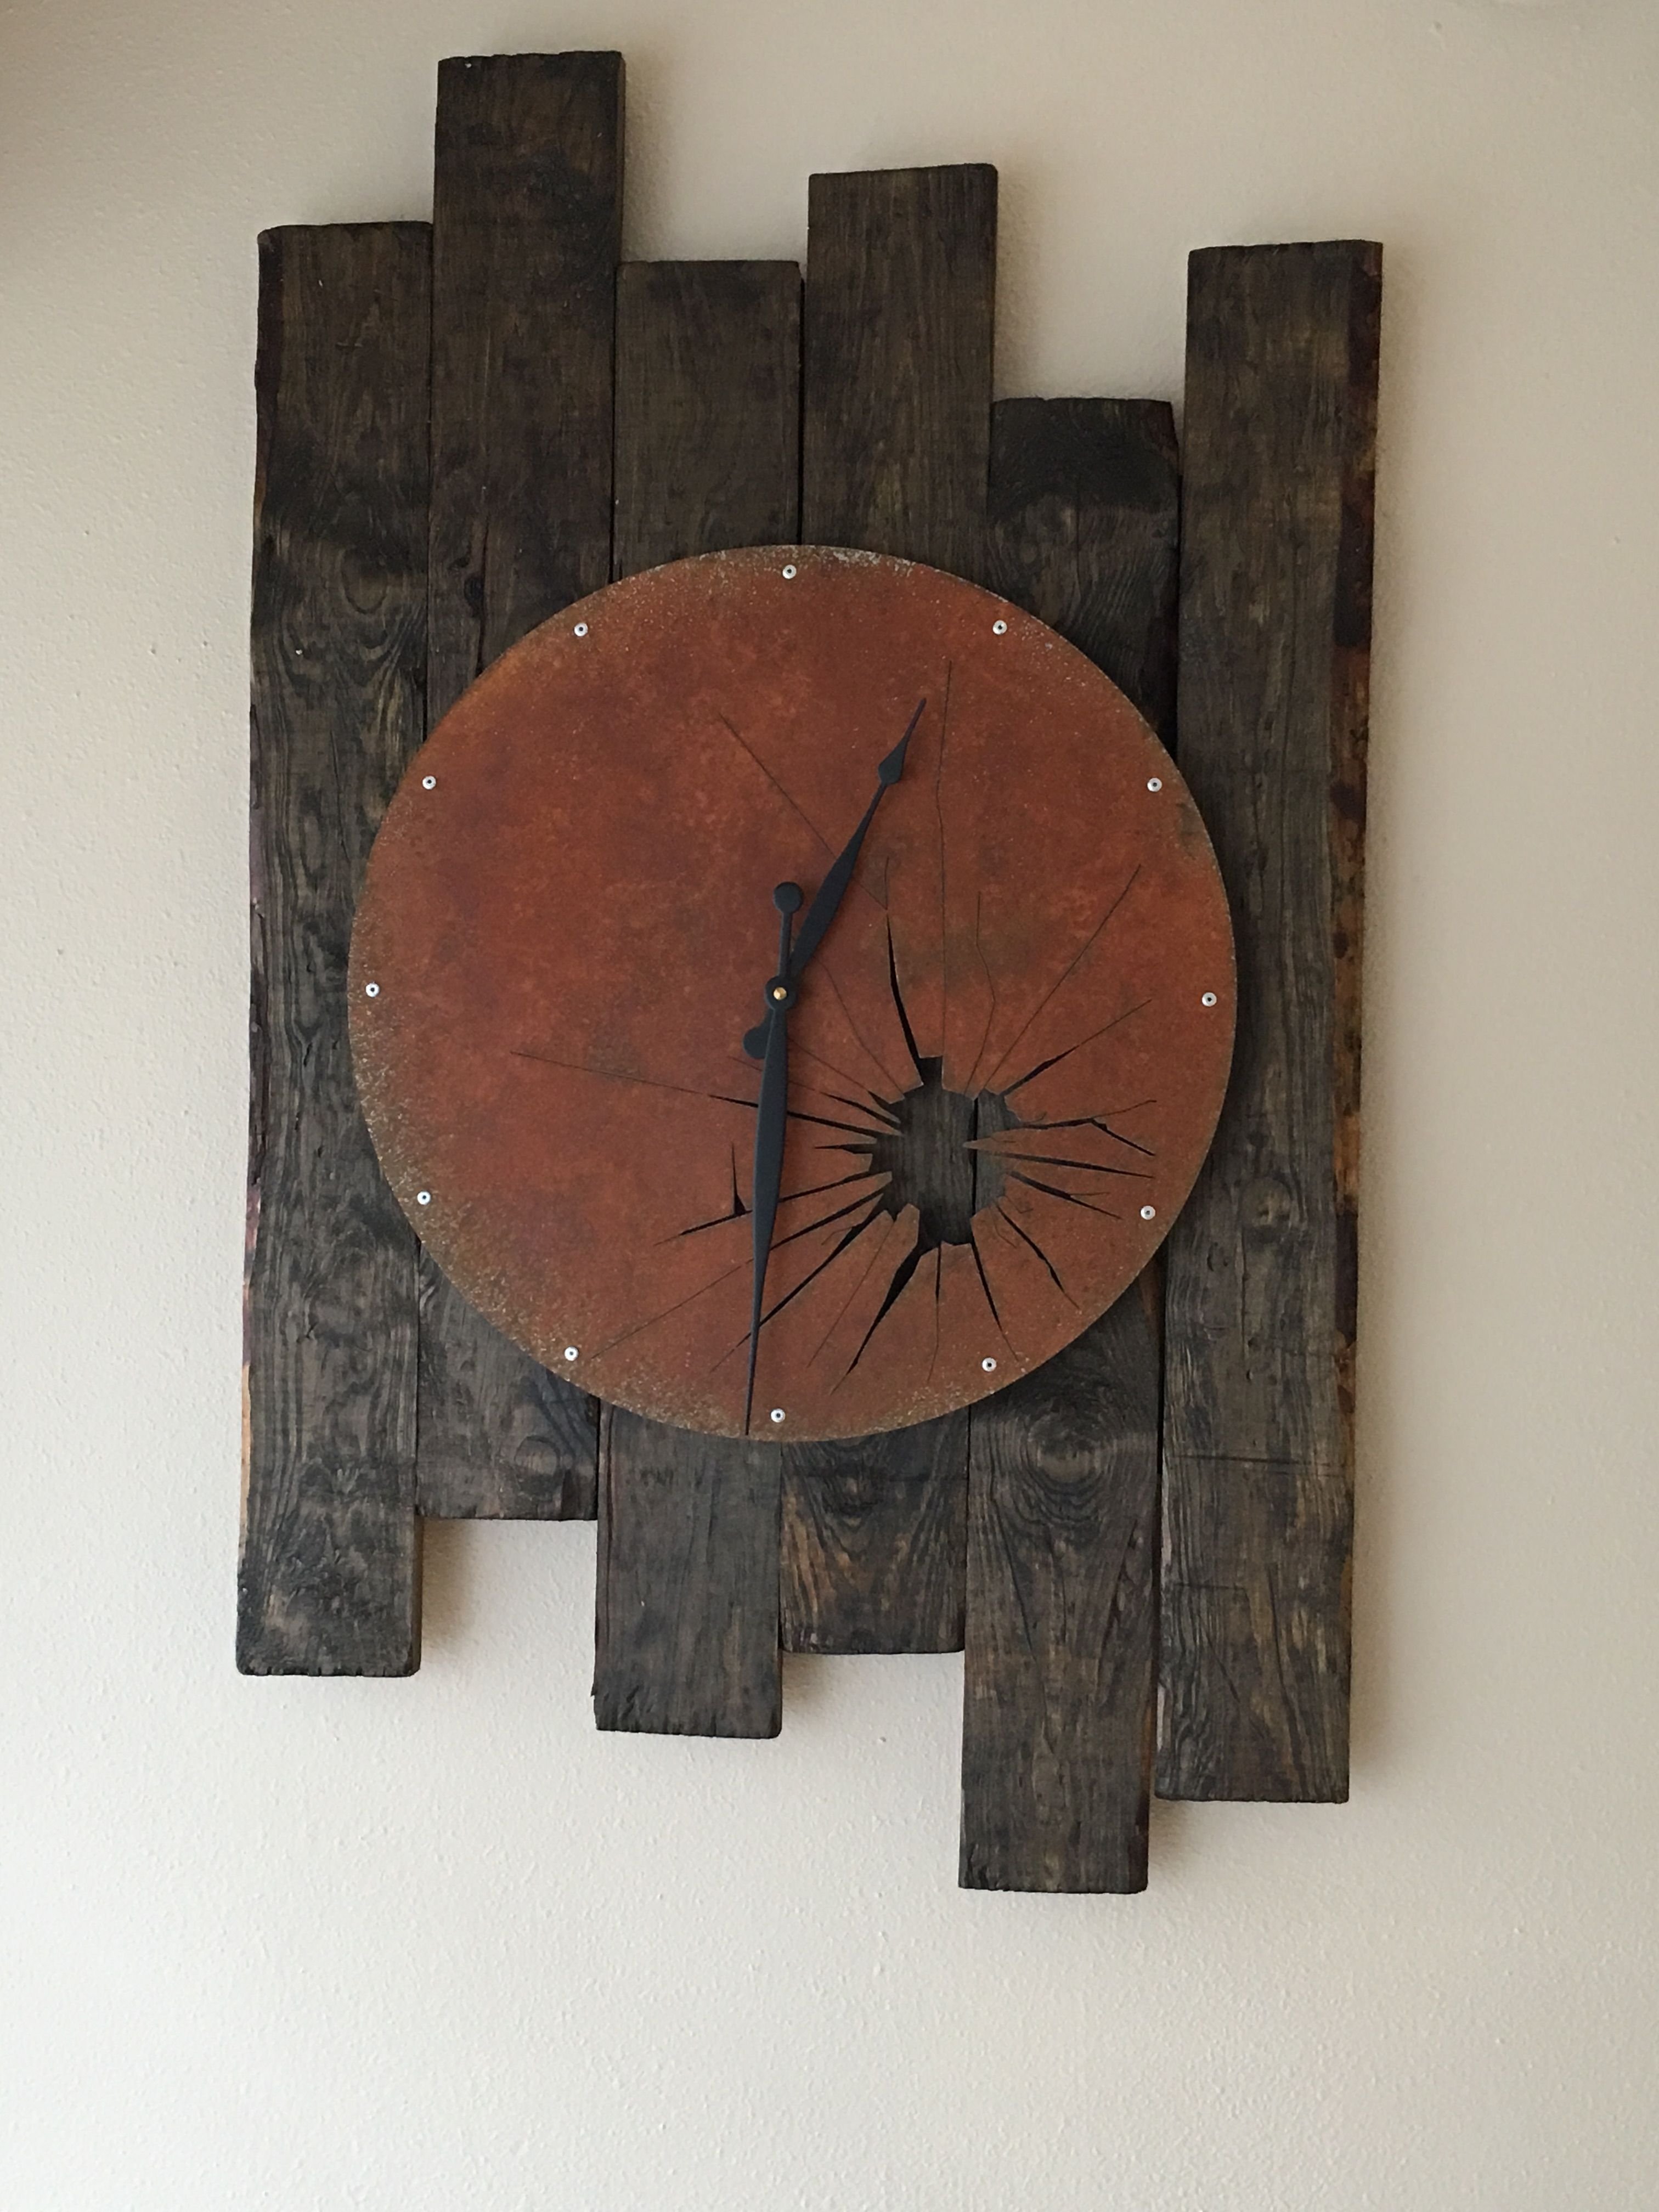 Distressed Wood Plank Wall Art With Clock (View 7 of 15)